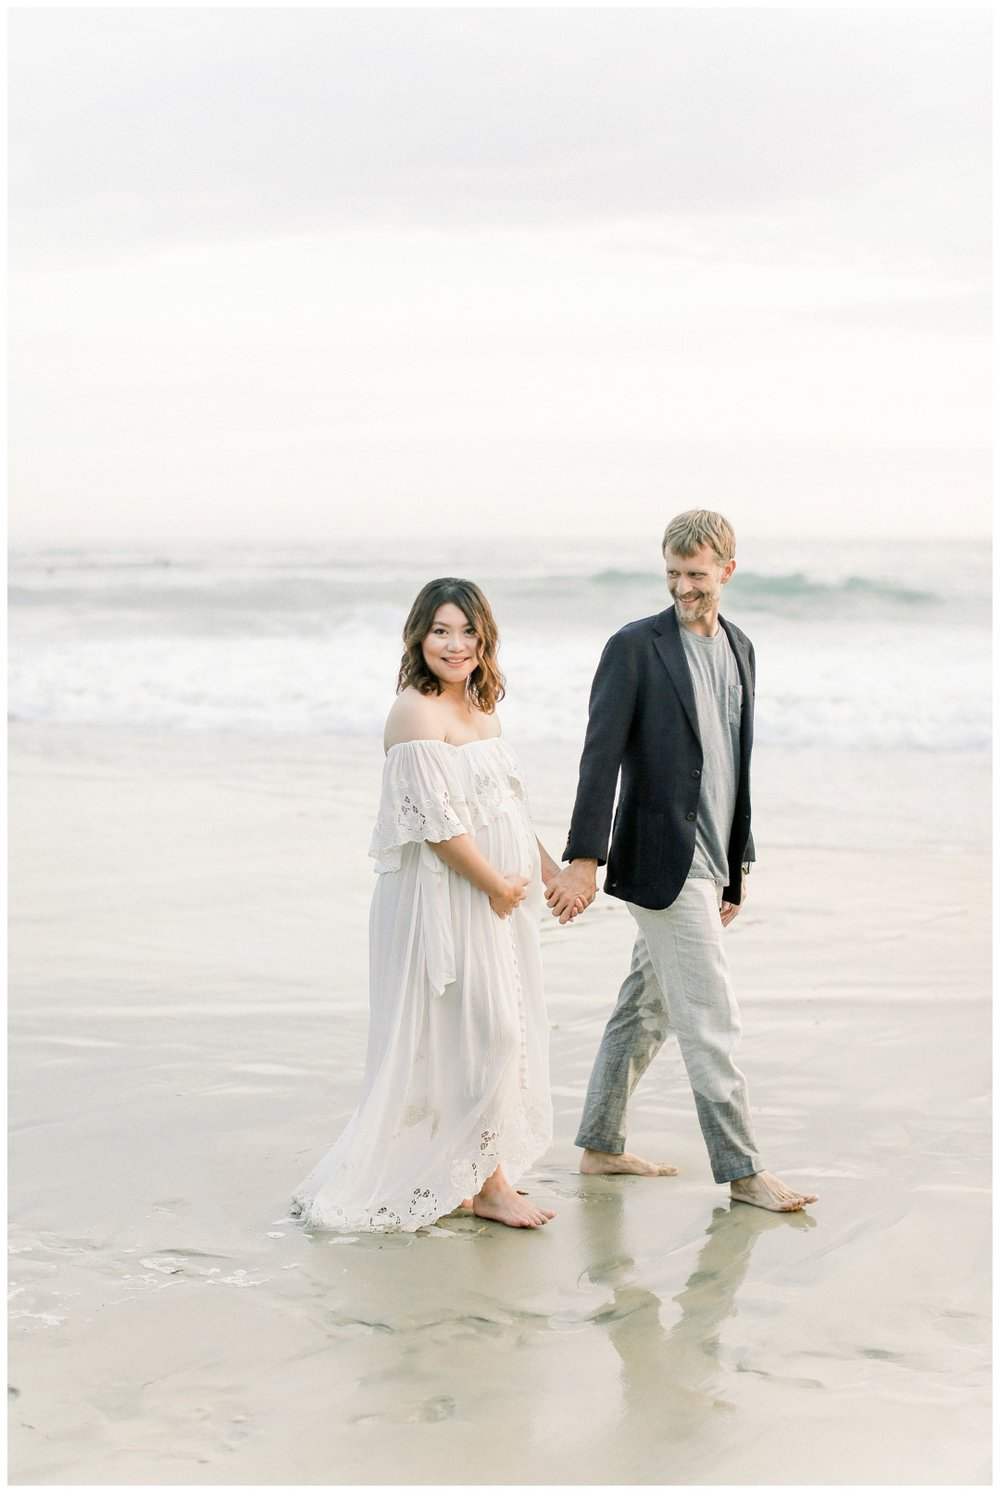 Newport_Beach_Maternity_Photographer_The_Koontz_Maternity_Session_Newport_Beach_Maternity_Photography_Orange_County_Photography_Cori_Kleckner_Photography_Orange_County_Beach_Photography_The_Ritz_Carlton_Laguna_Niguel_Resort_ Maternity_Session__1742.jpg